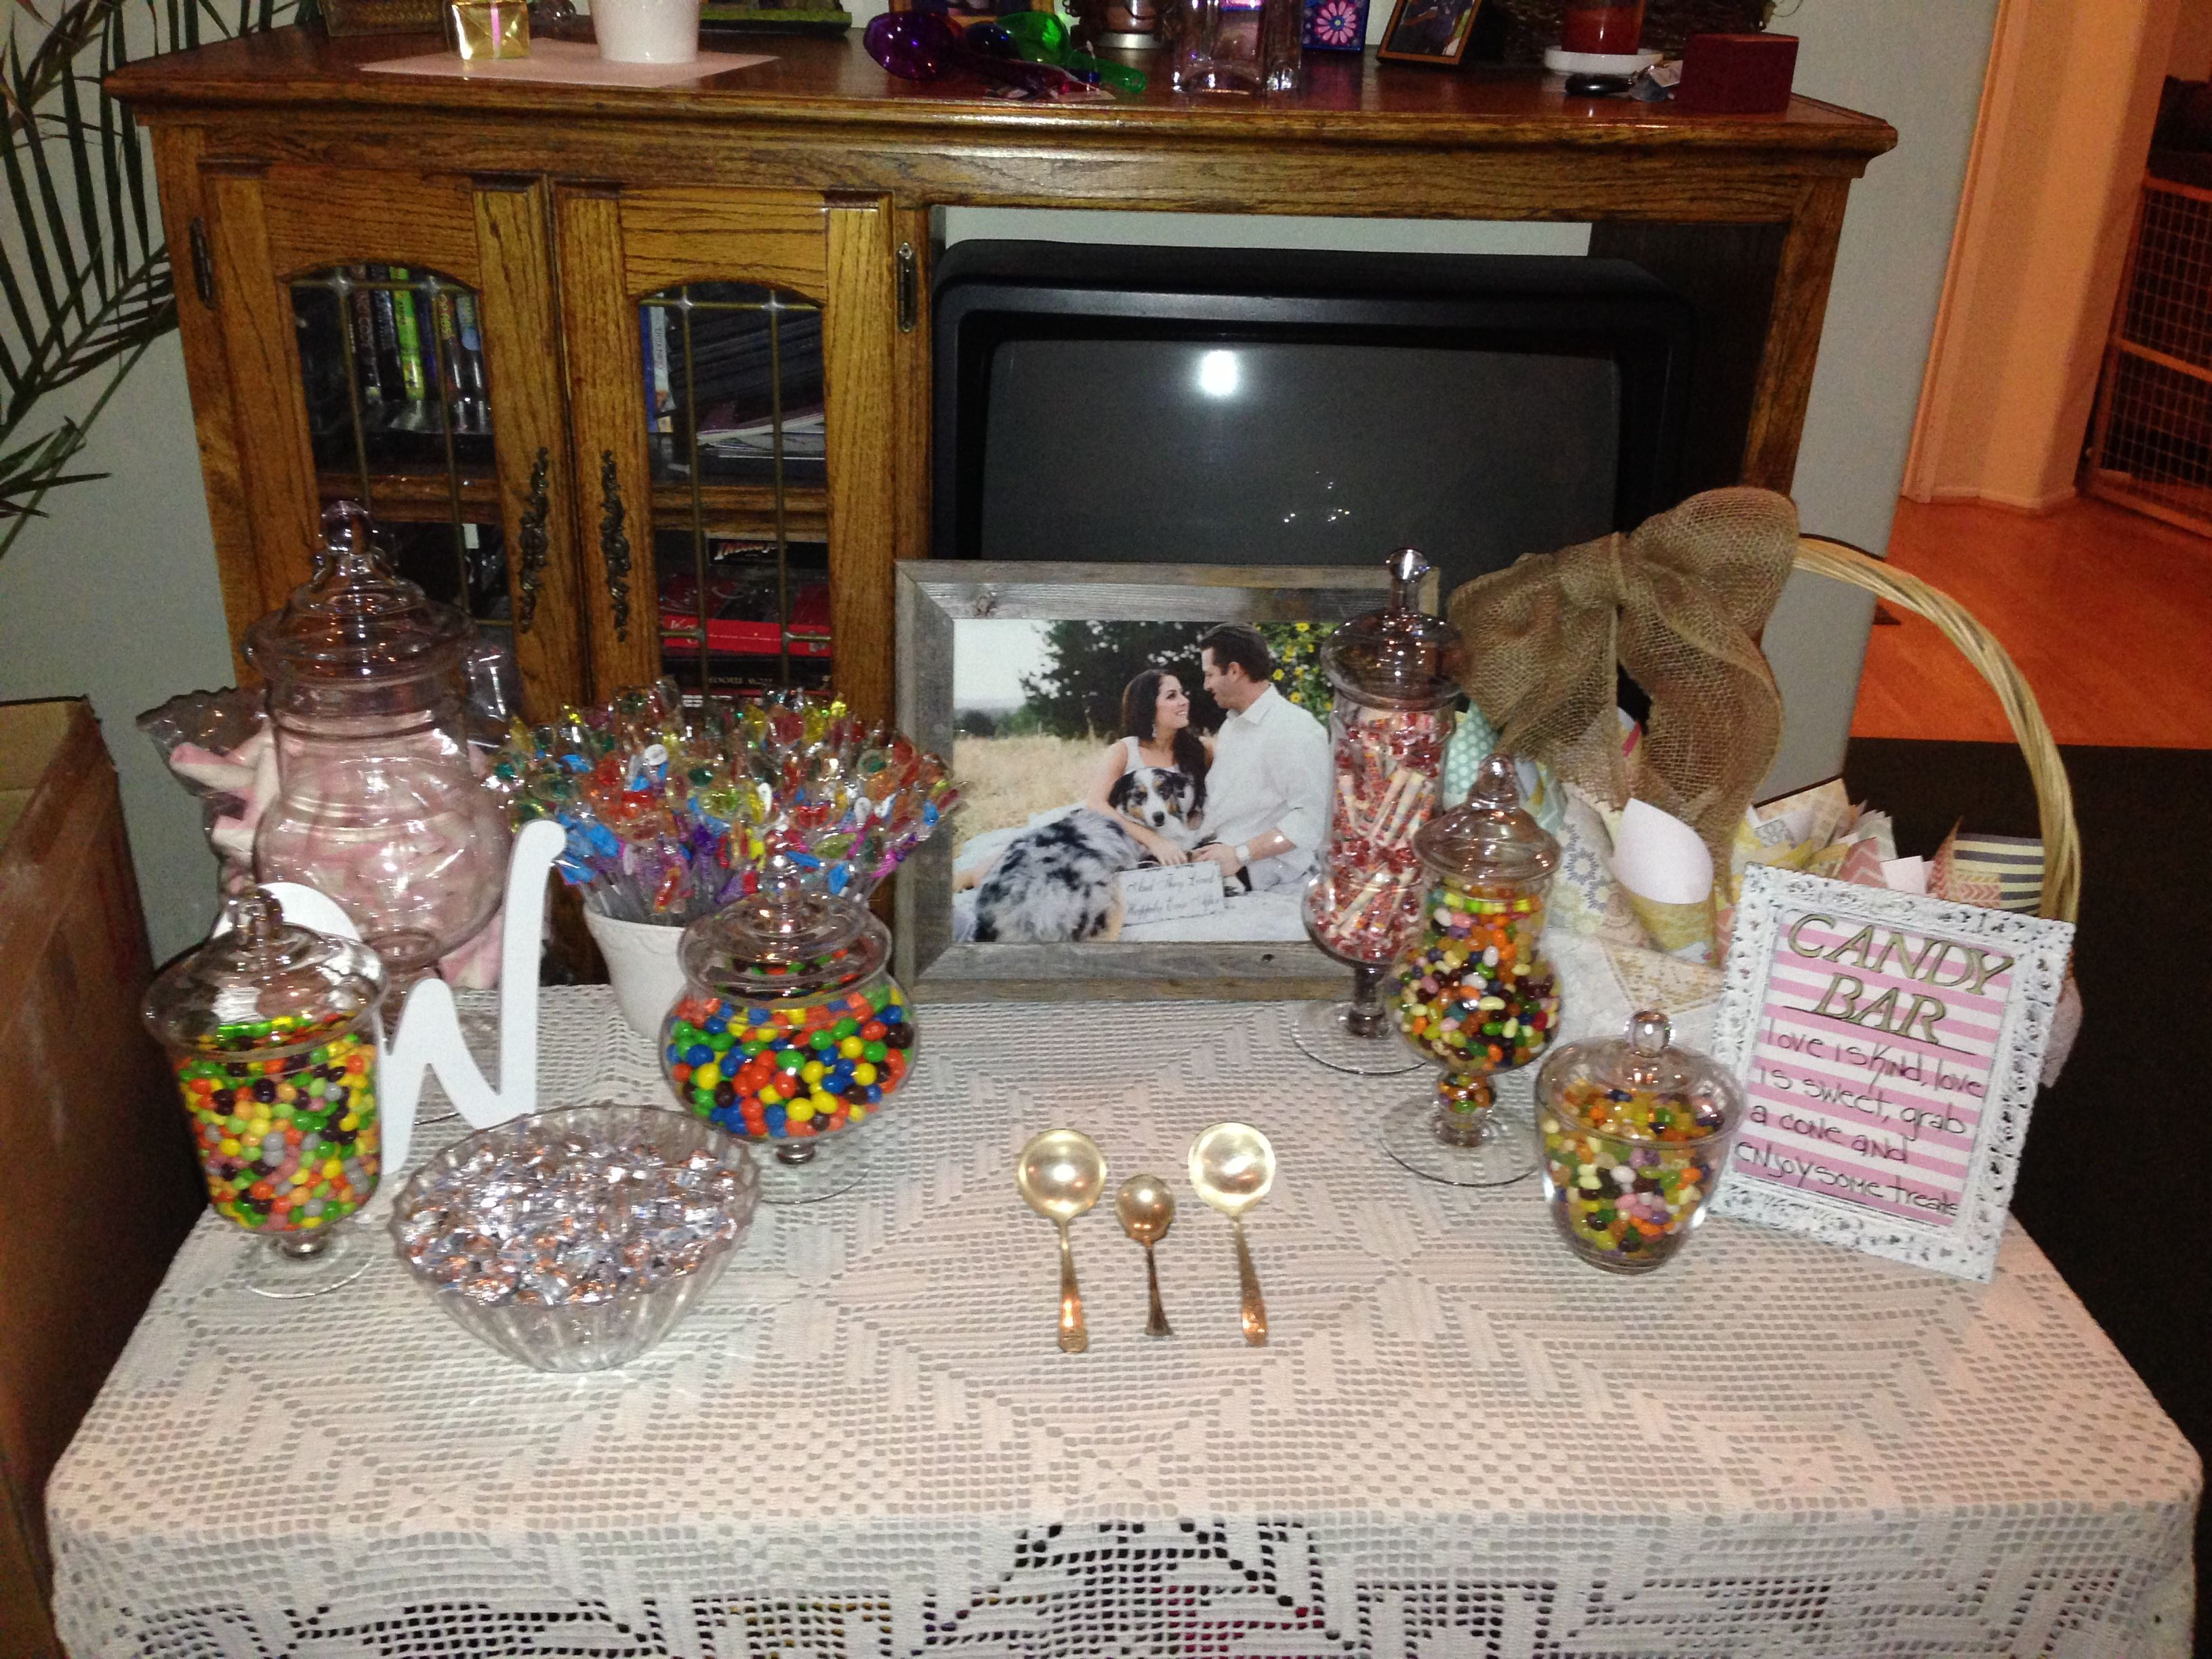 The Thank you Candy Bar